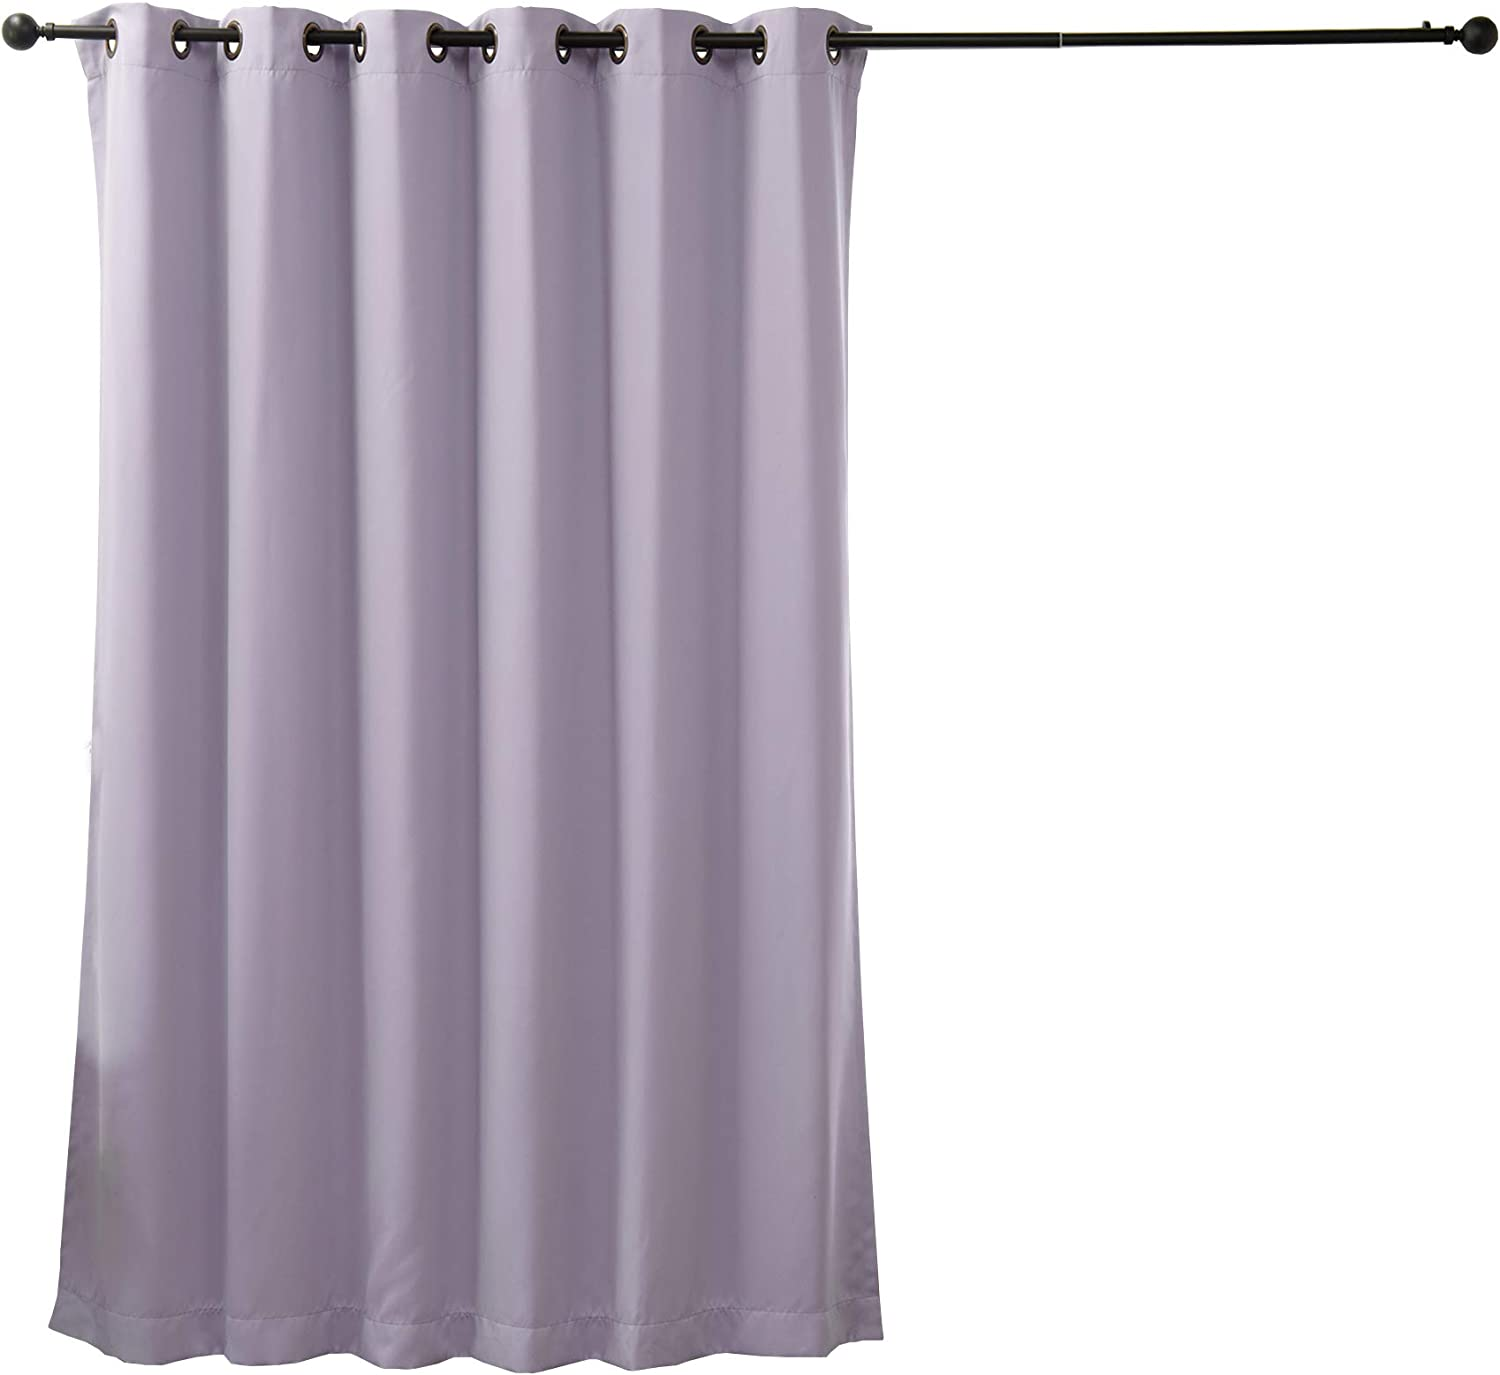 Best Home Fashion Wide Width Thermal Insulated Blackout Curtain - Antique Bronze Grommet Top - Lilac - 80